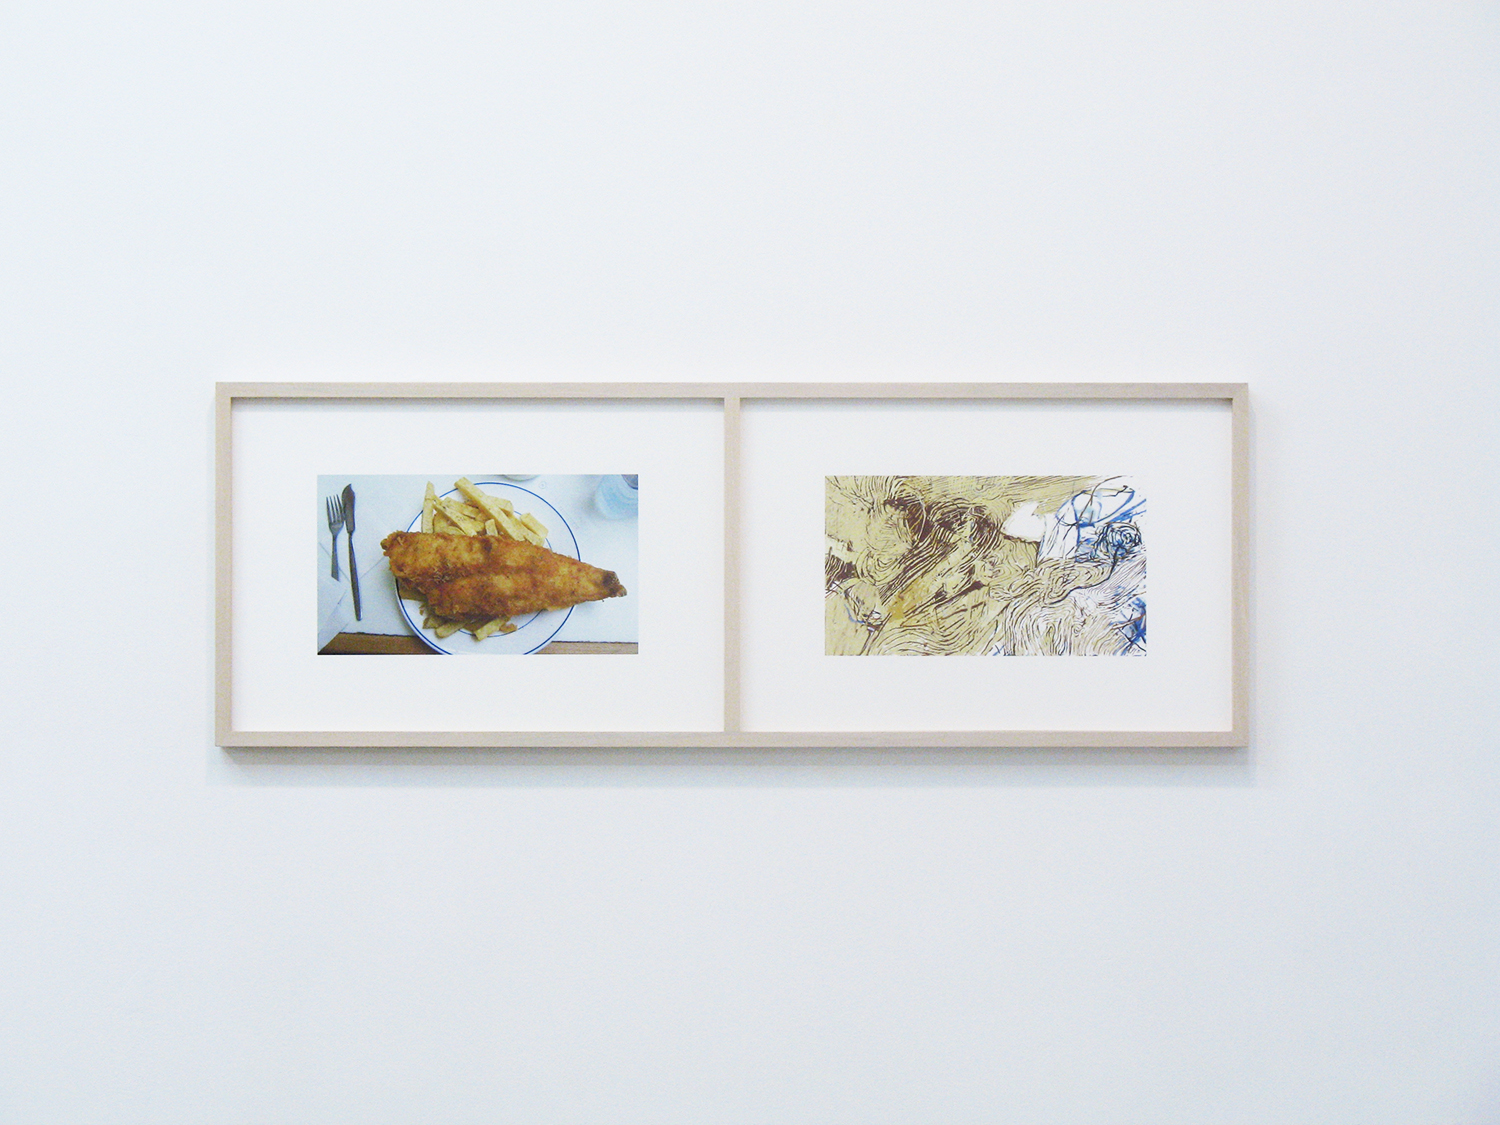 Fish & Chips<br>Inkjet print on Archived paper, 329 x 483 mm x 2, 2006